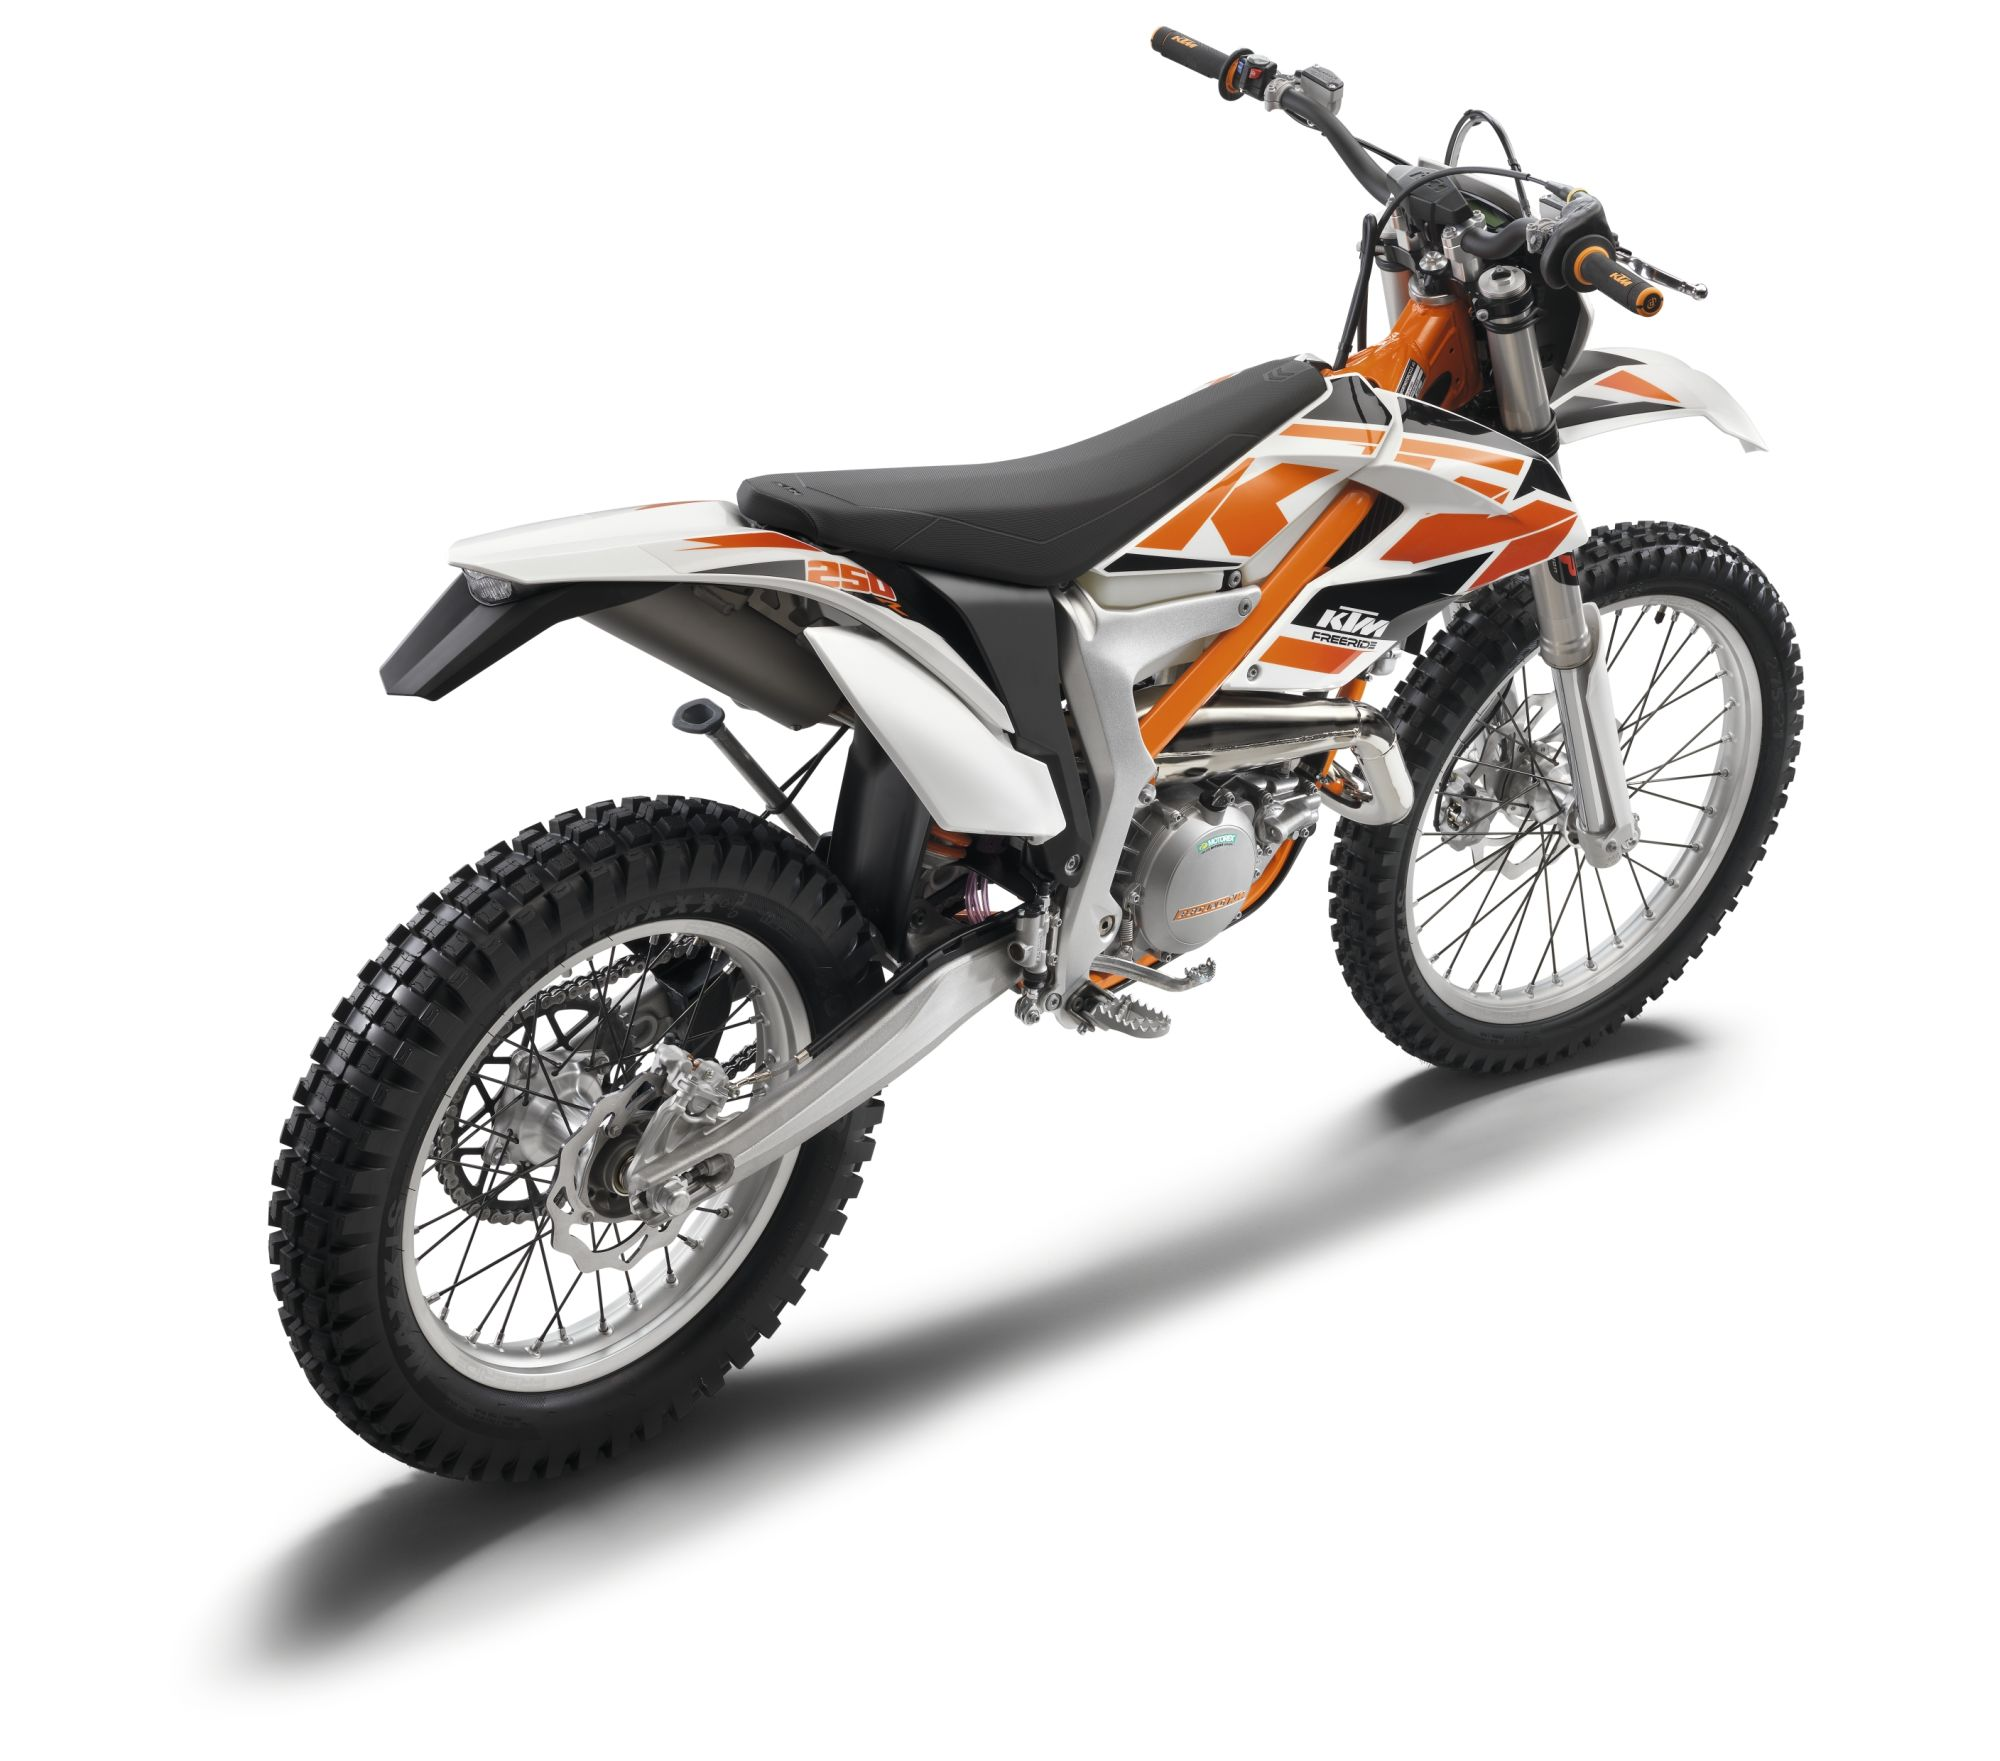 ktm freeride 250 r all technical data of the model freeride 250 r from ktm. Black Bedroom Furniture Sets. Home Design Ideas